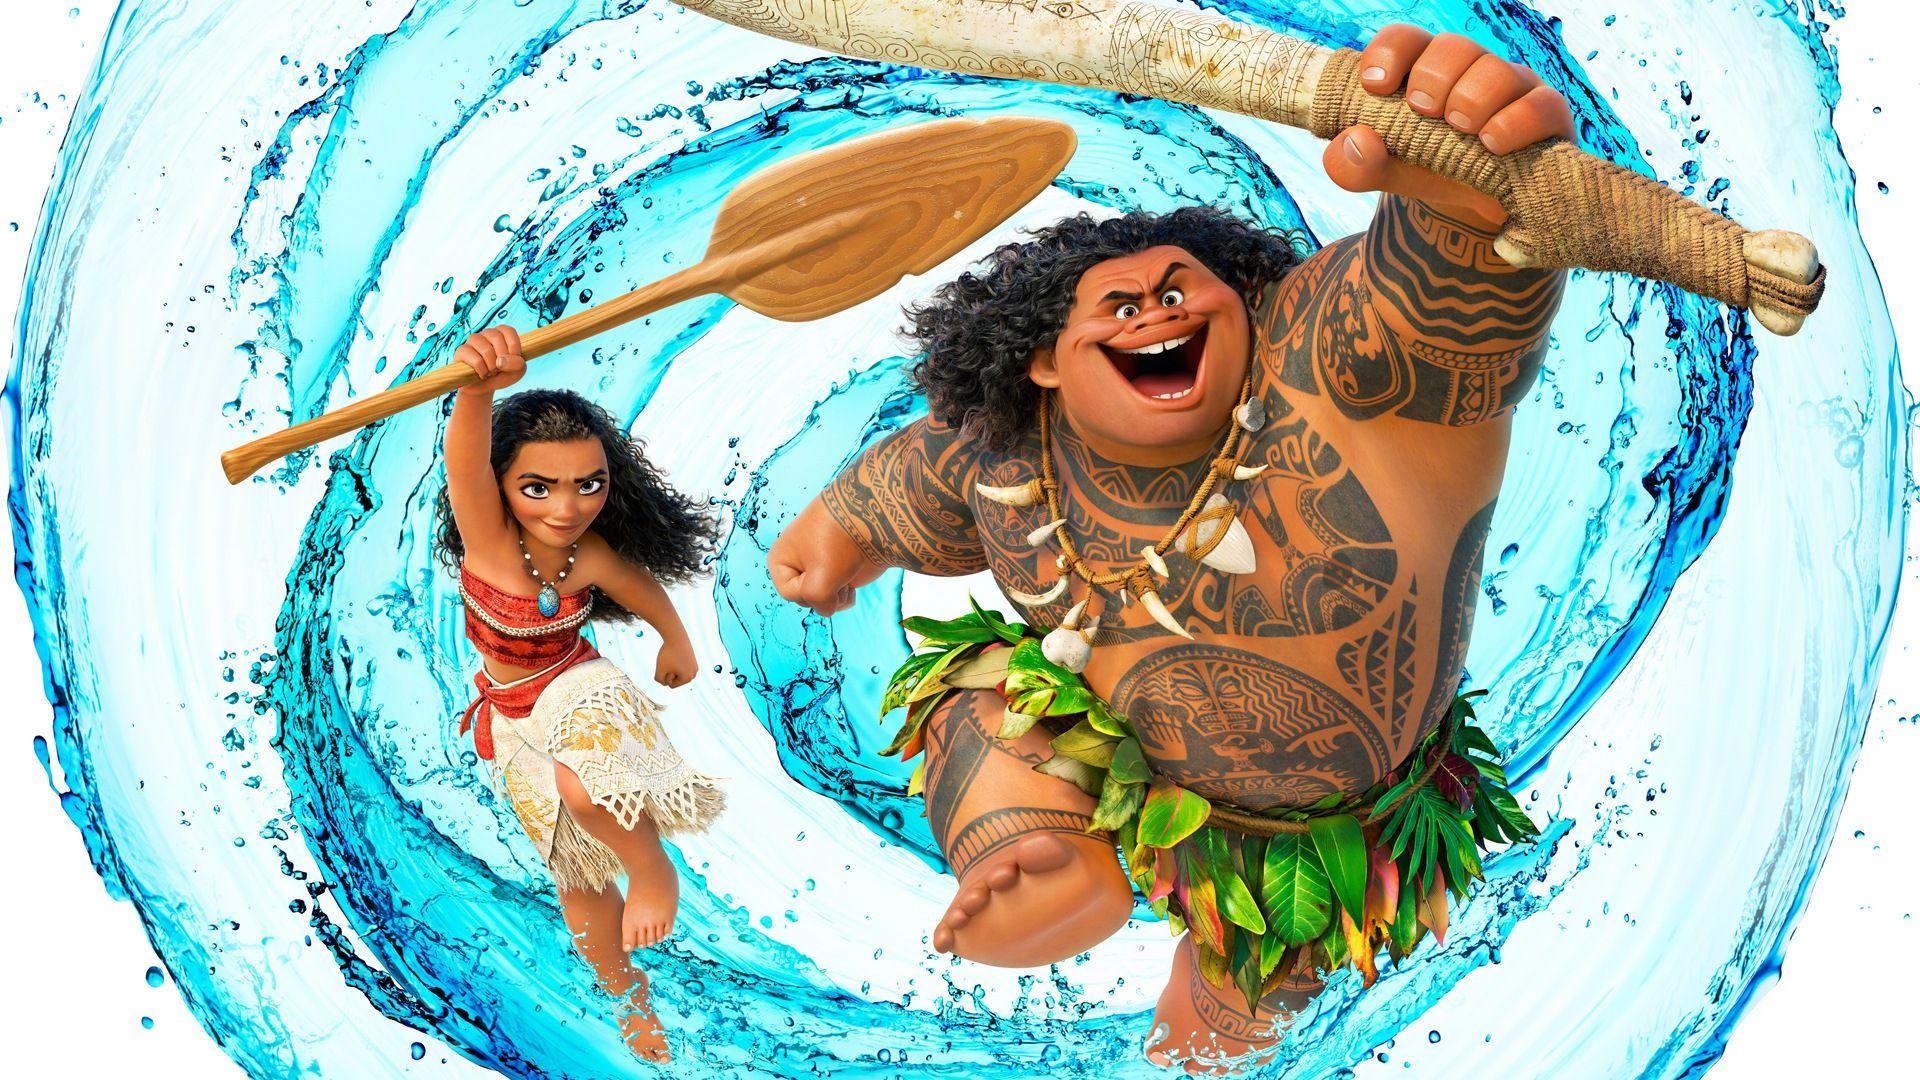 Moana and Maui Disney Movie Wallpaper #15570